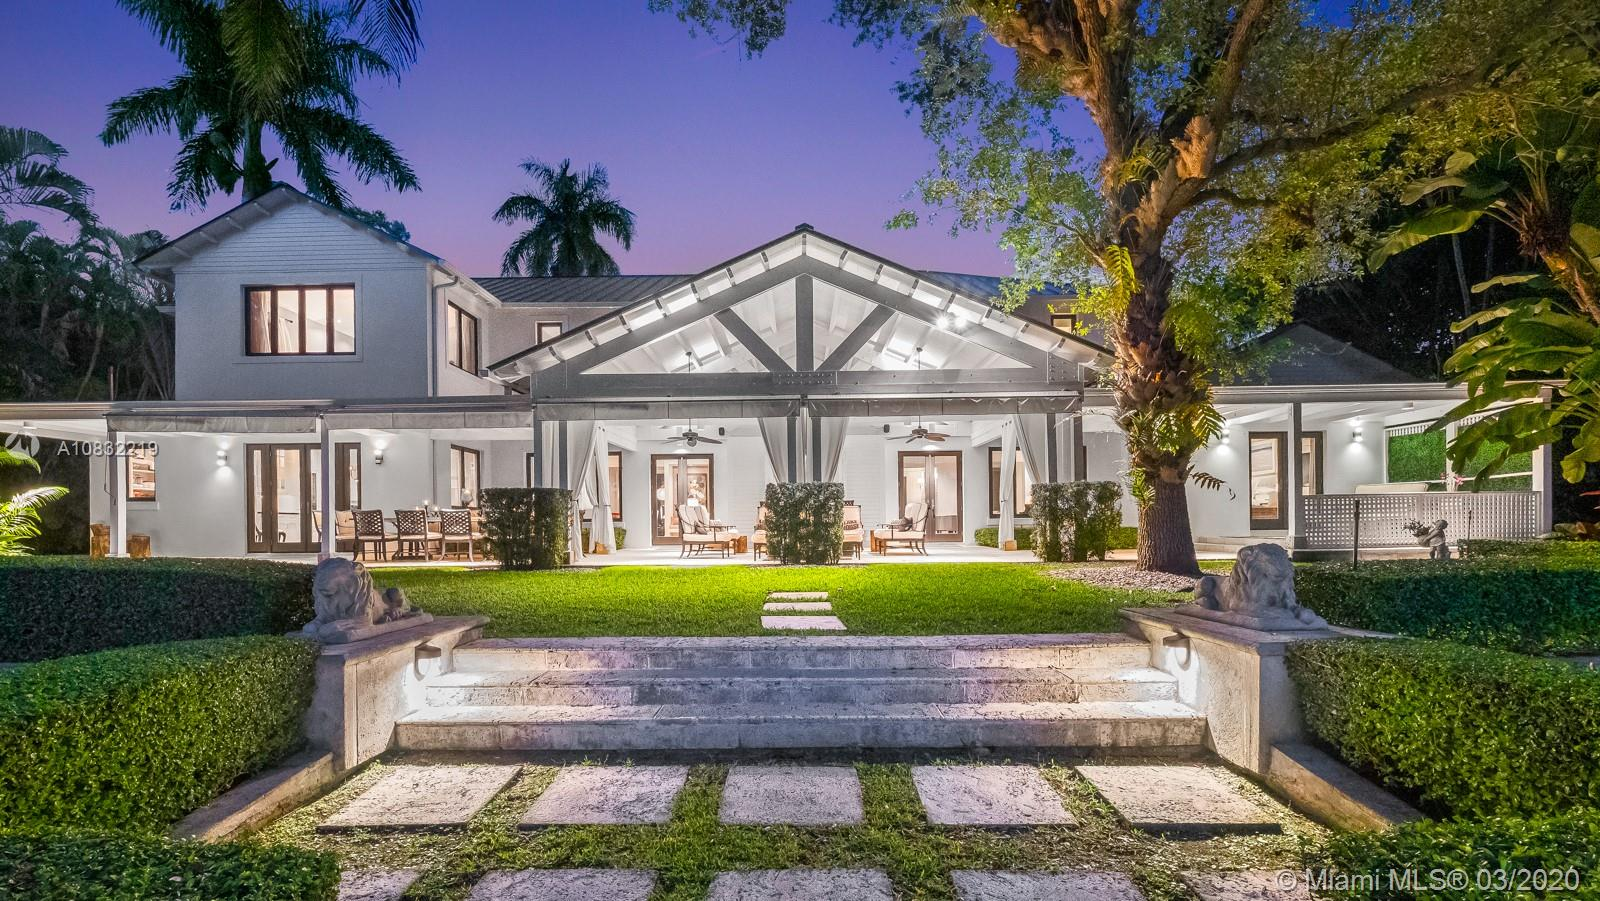 Incredible lakefront property in desirable gated Hammock Lakes community in Coral Gables. Stunning and impeccably updated 9,522 Total SF, 6BR/7+1BA home sits on breathtaking 51,054 SF lot. The home benefits from wonderful entertaining areas and spectacular views of the tranquil lake throughout. A covered terrace spans the entire back of the house and opens to a beautifully landscaped yard, with large pool with cabana bath, and leads directly to the lake. Hector & Hector chef's kitchen with Wolf and Subzero appliances, gas stove and large island. First floor features 2 entertaining rooms, family room, 2 guest suites and office/maid quarters. Upstairs offers primary suite +2 additional bedrooms. Three car garage, 1/2 basketball court & convenient location for shops, restaurants and schools.